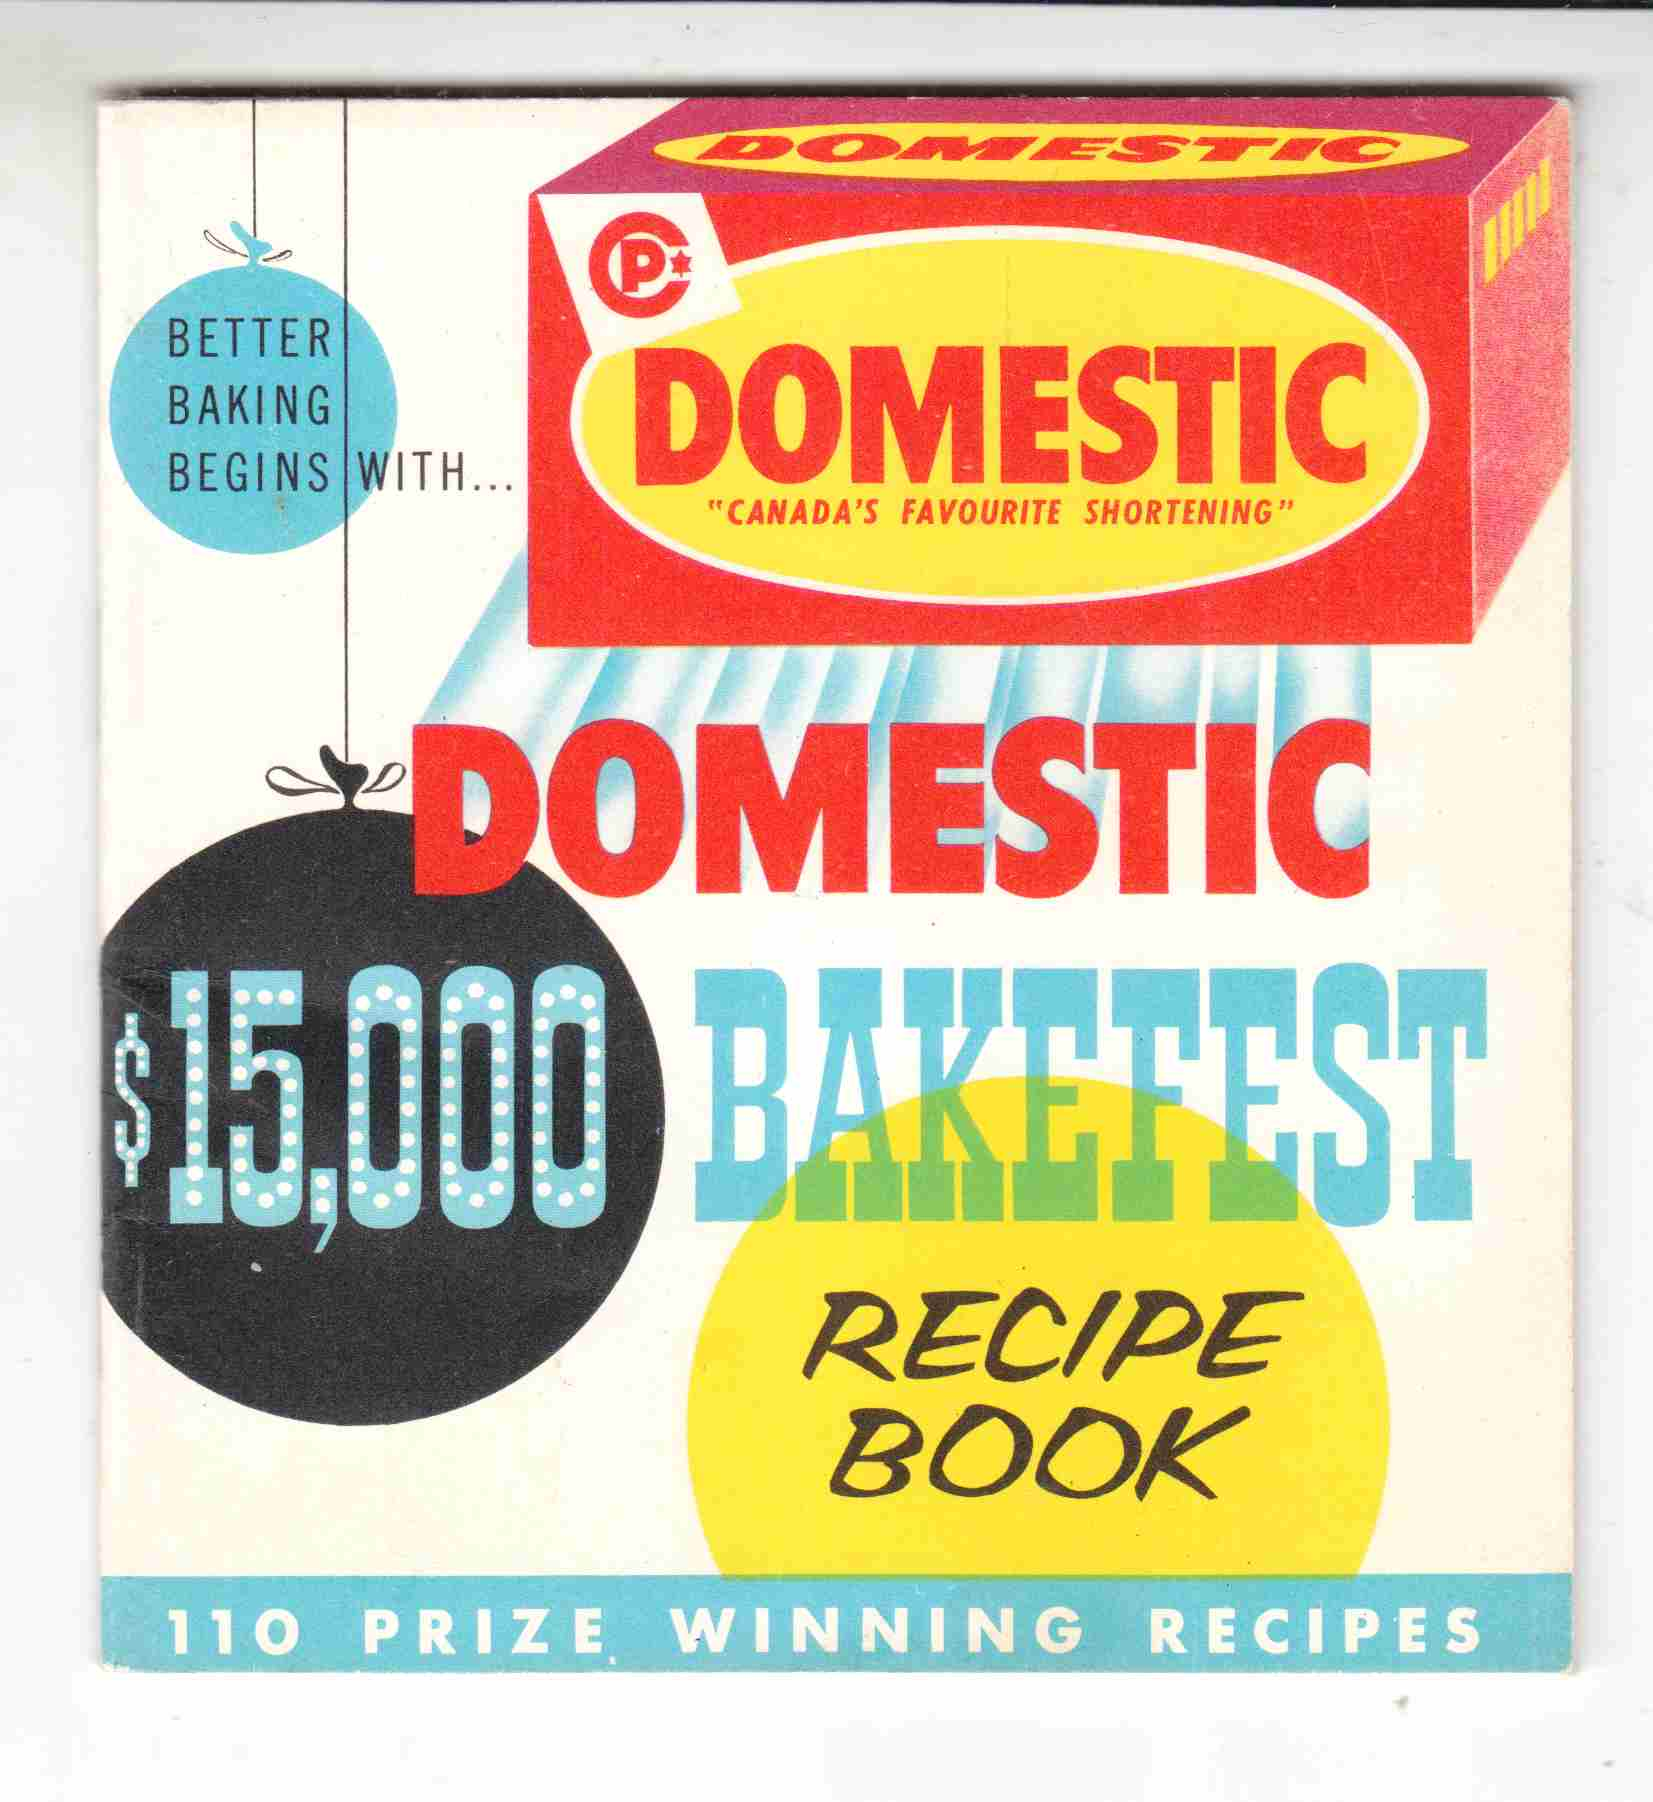 Image for Domestic $15000 Bakefest Recipe Book